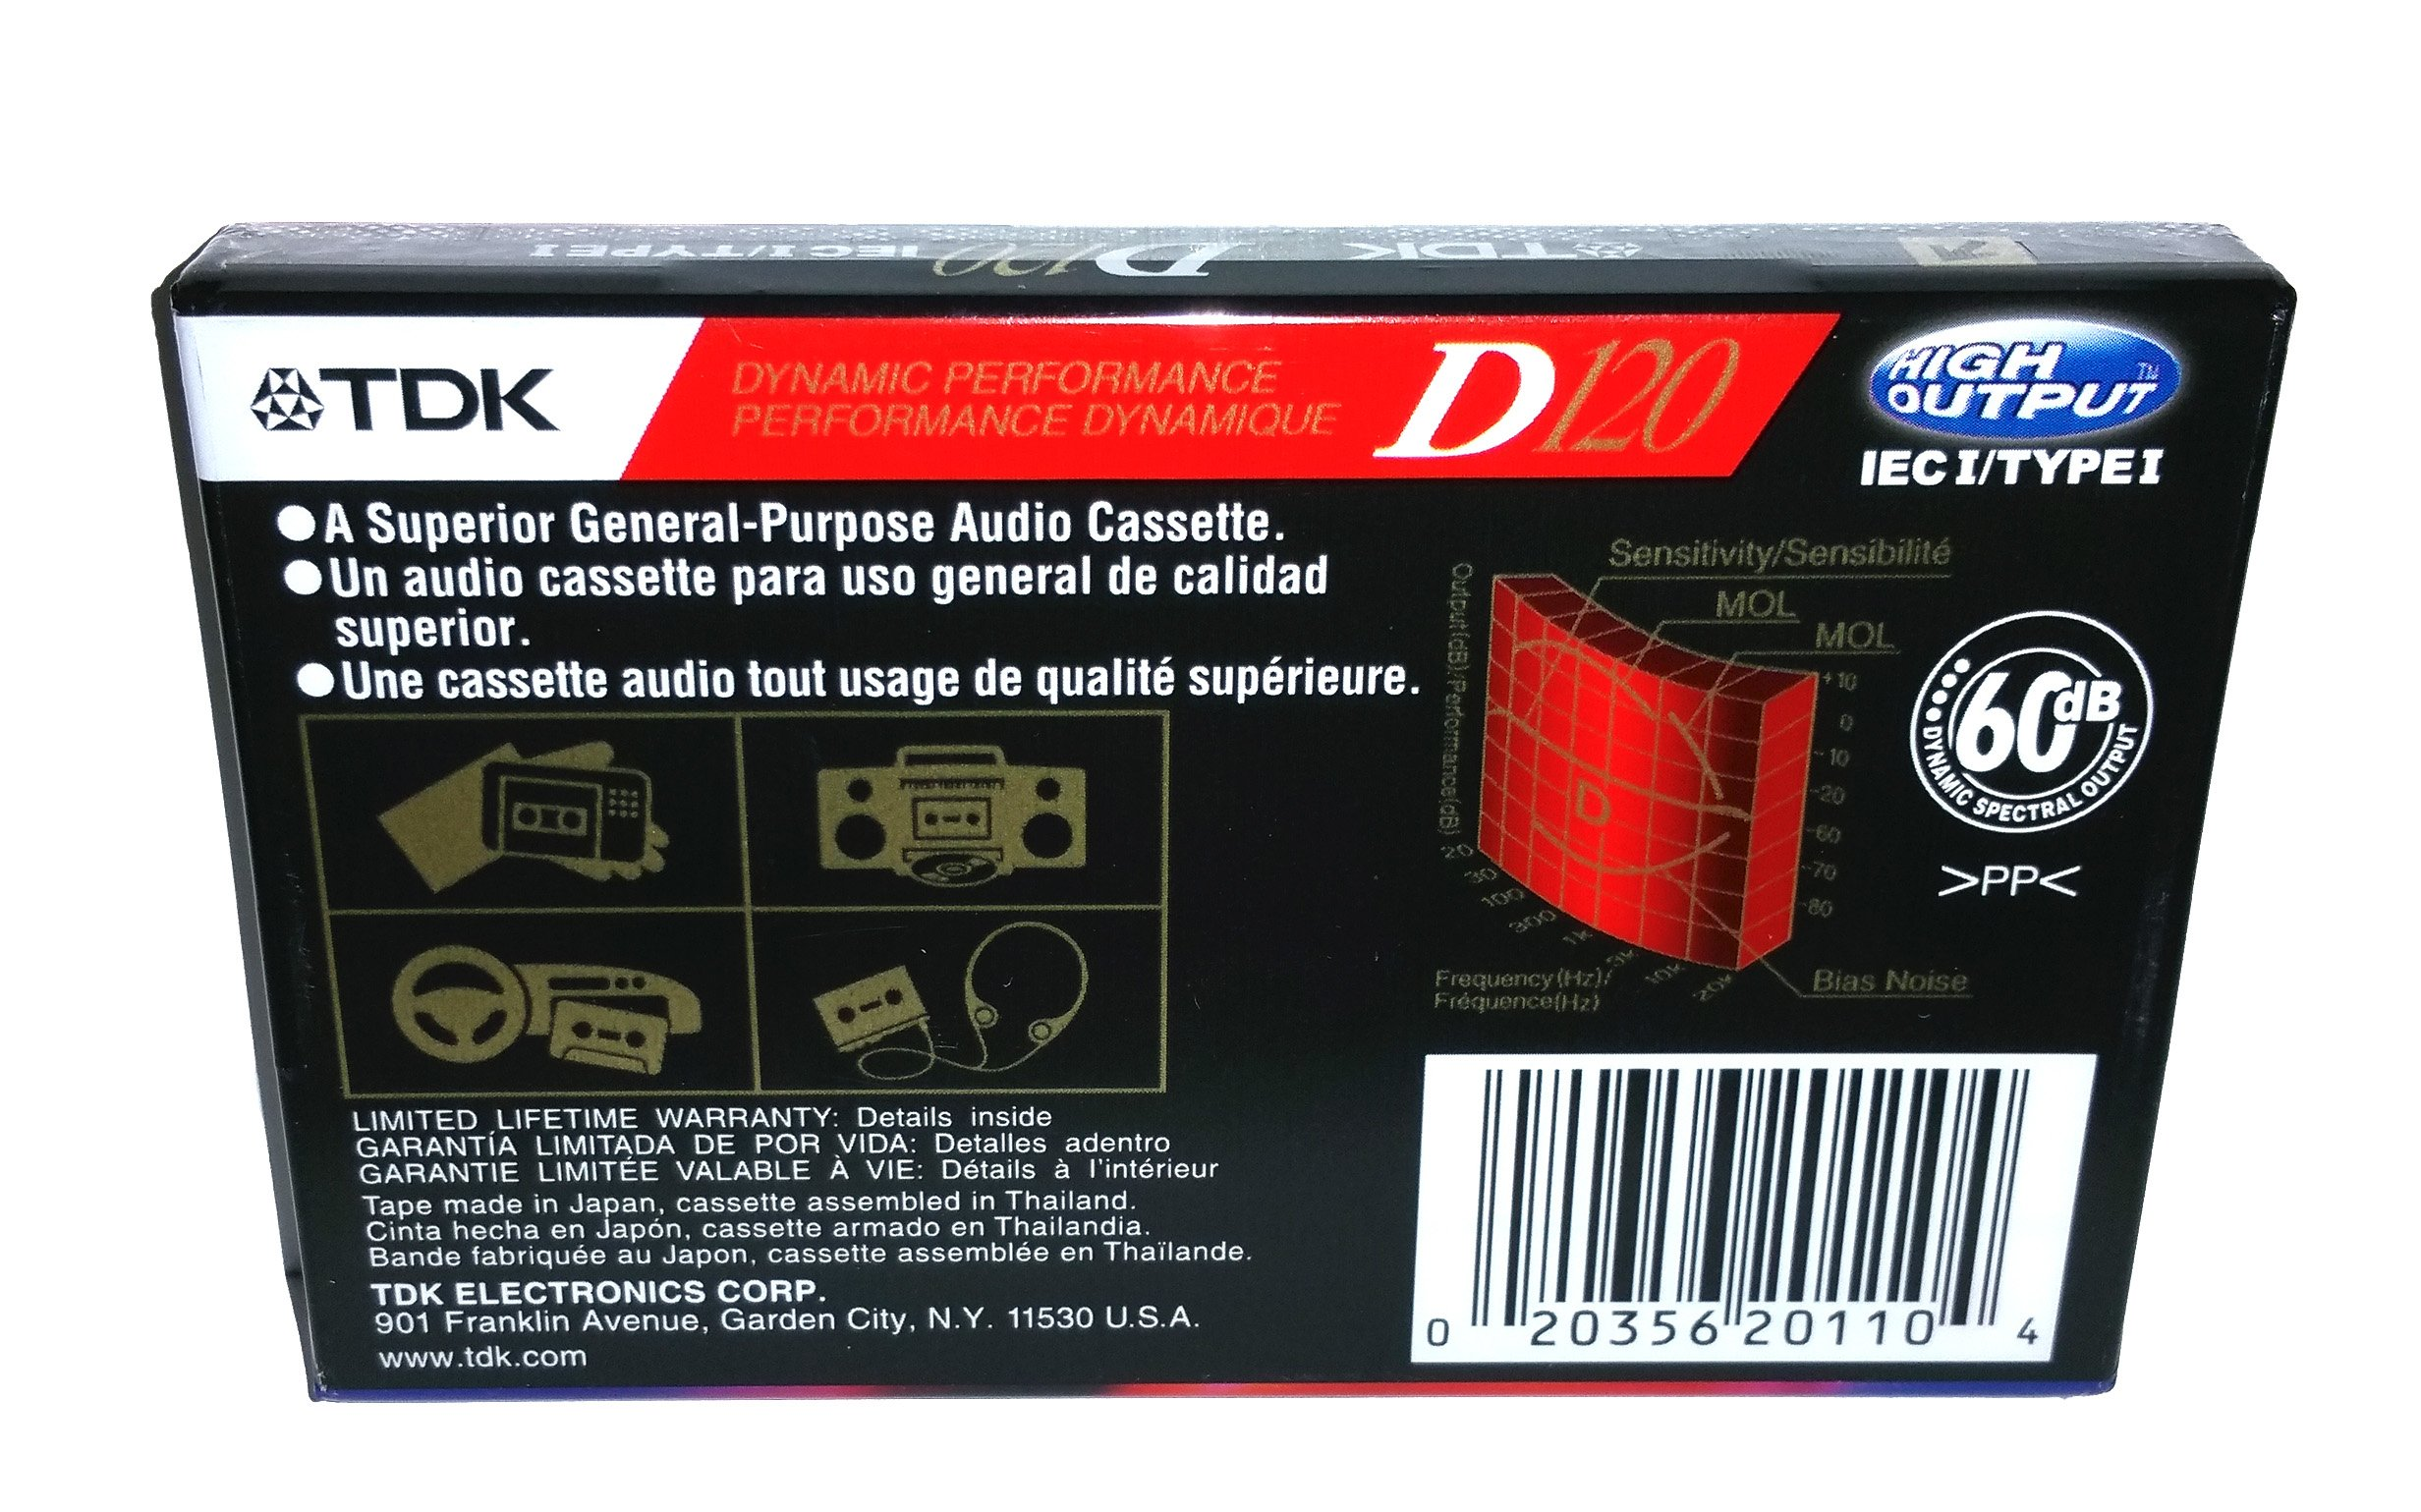 TDK Dynamic Performance D120 High Output IEC I / Type I - 5 Pack Audio Cassette Tapes